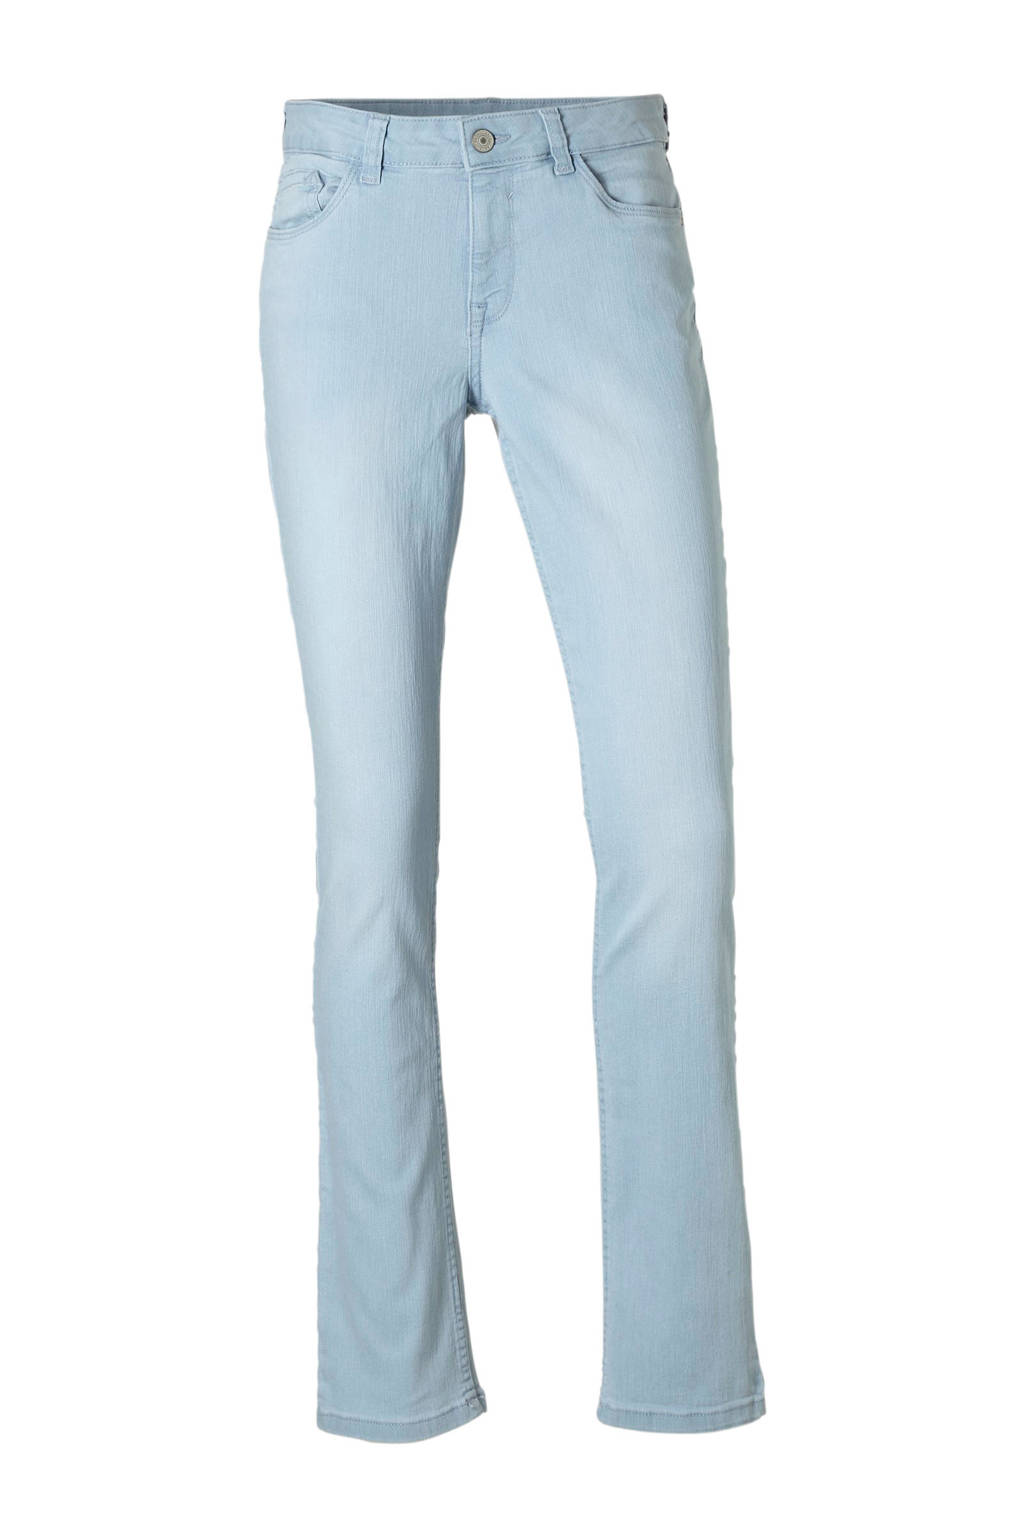 C&A The Denim slim fit jeans, ultrableached